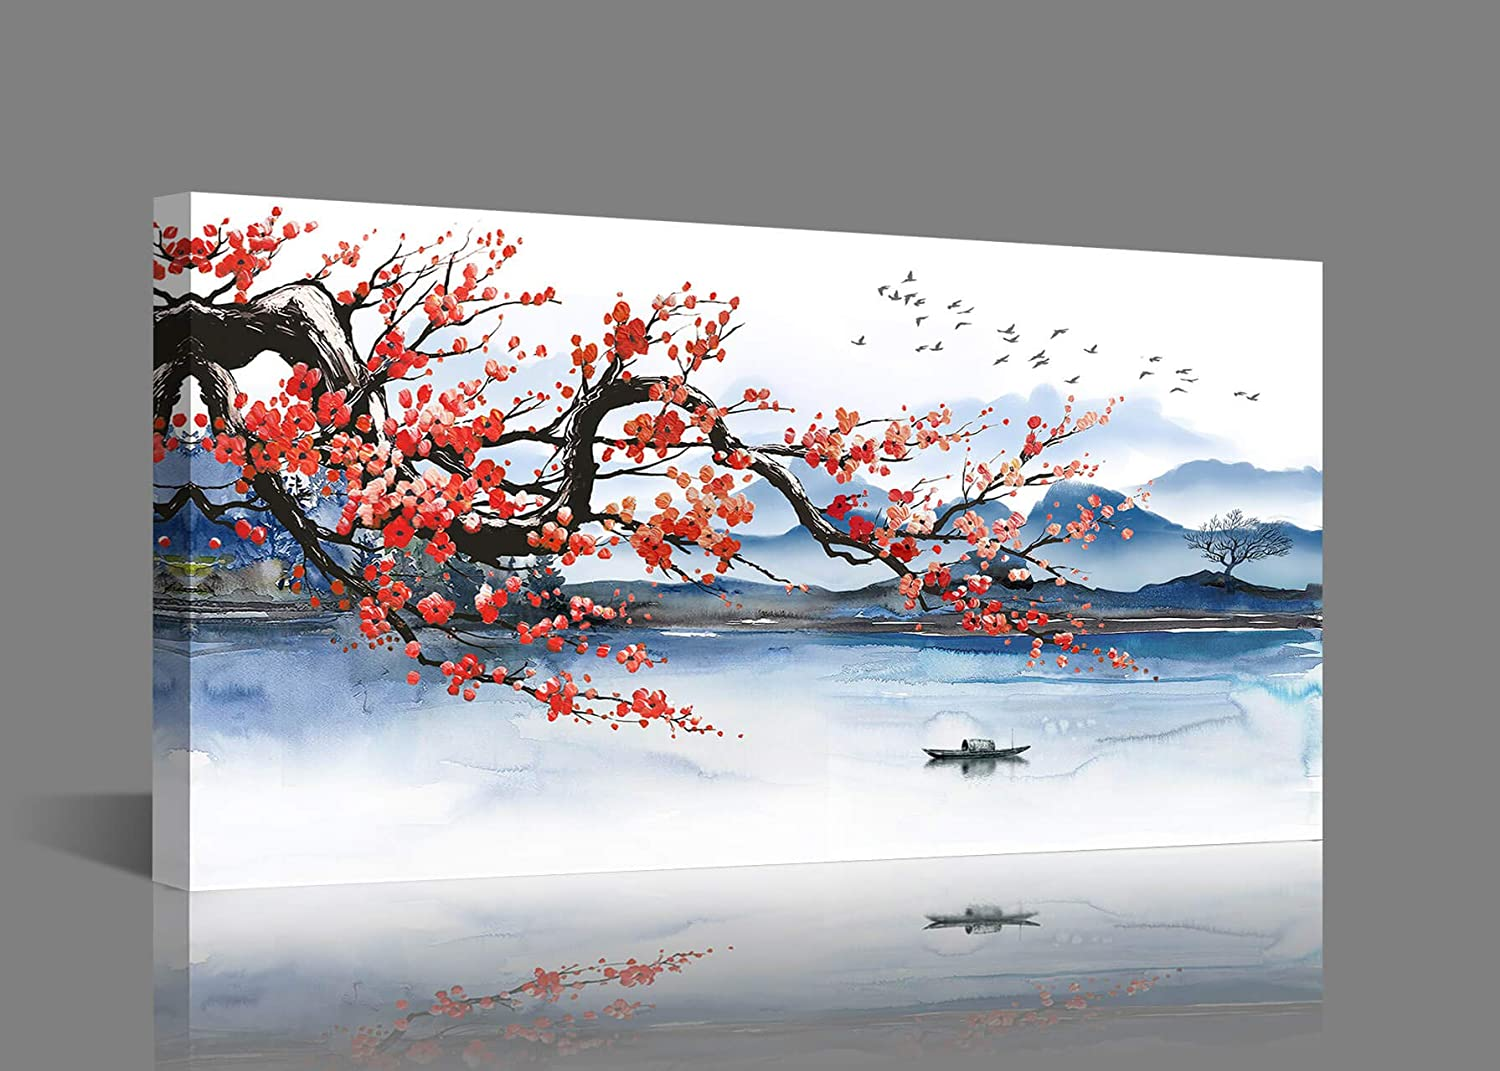 Large Wall Art for Living Room Canvas Art Wall Decor Framed Wall Art Modern Wall Decor for Bedroom Mountain Cherry Blossom Landscape Art Prints Modern Wall Art Artwork for Home Walls Size 24x48 inches